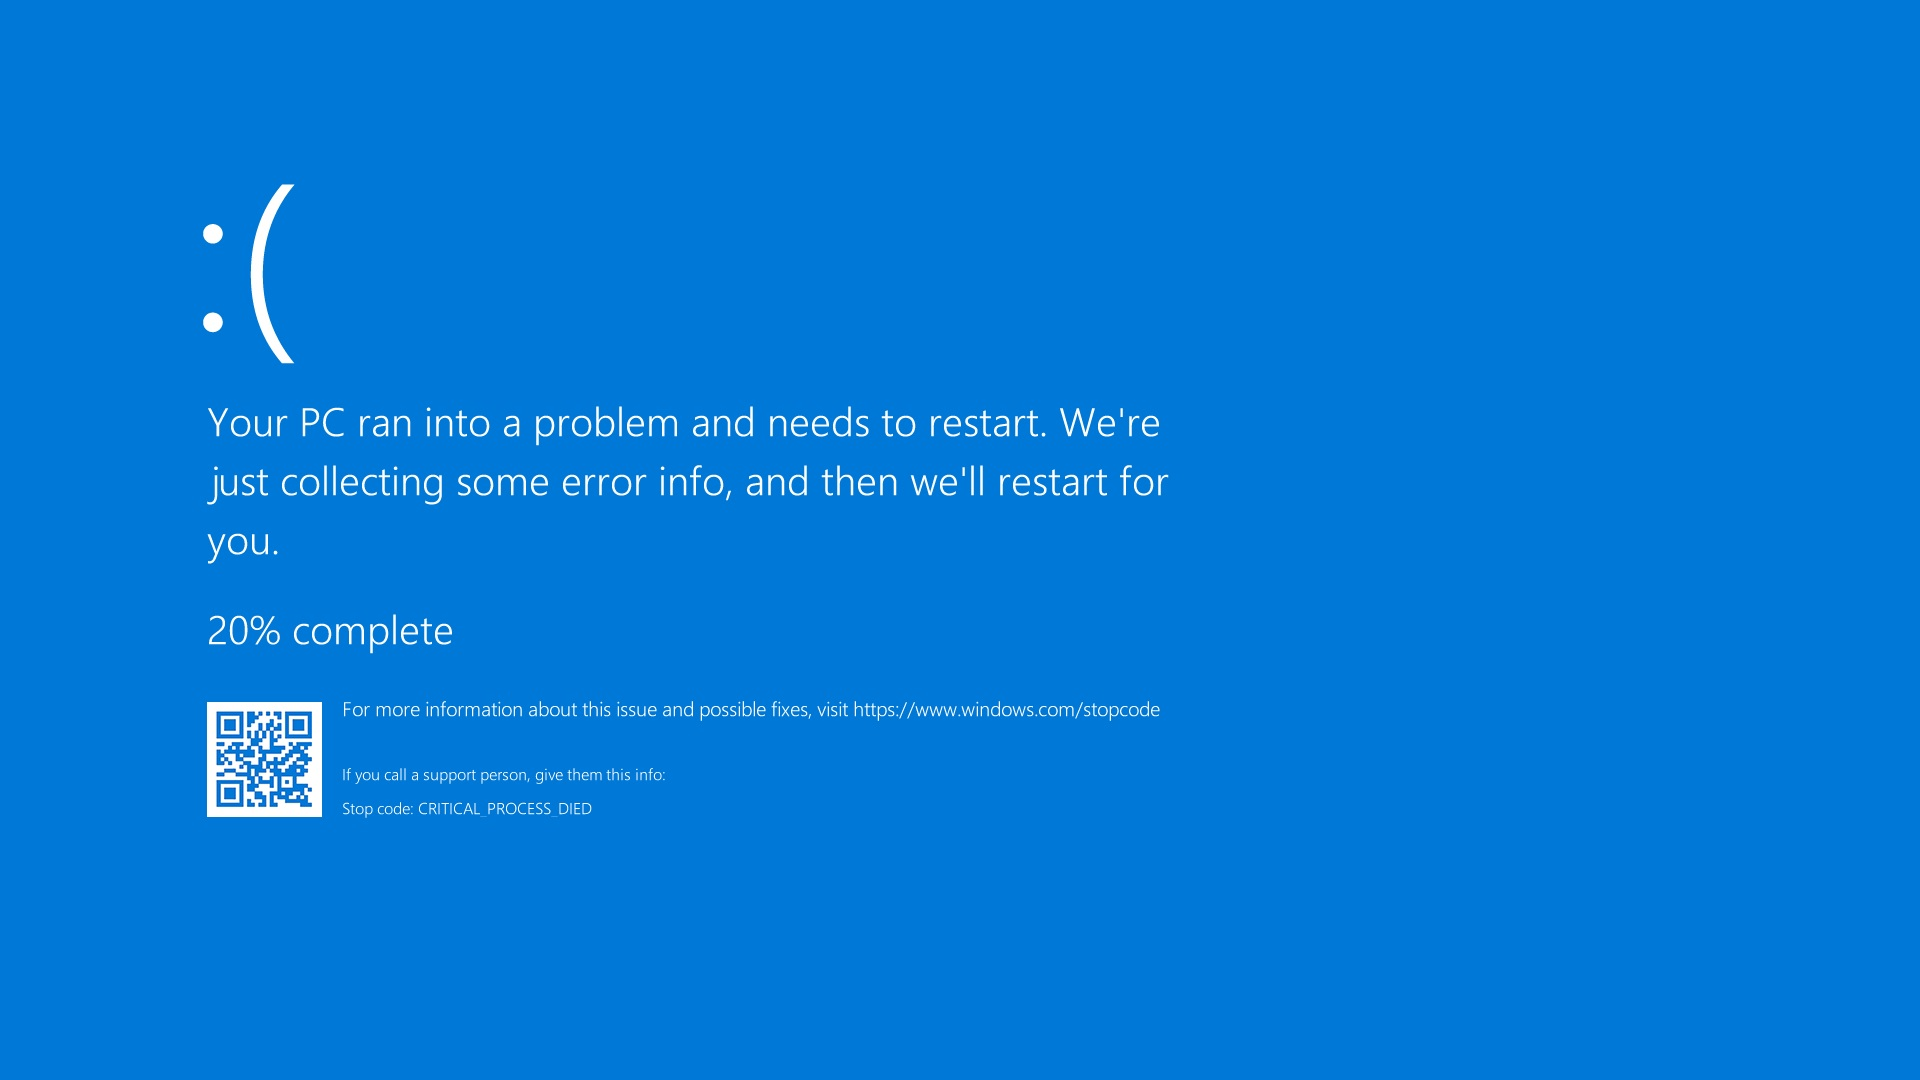 Windows 10 BSOD error